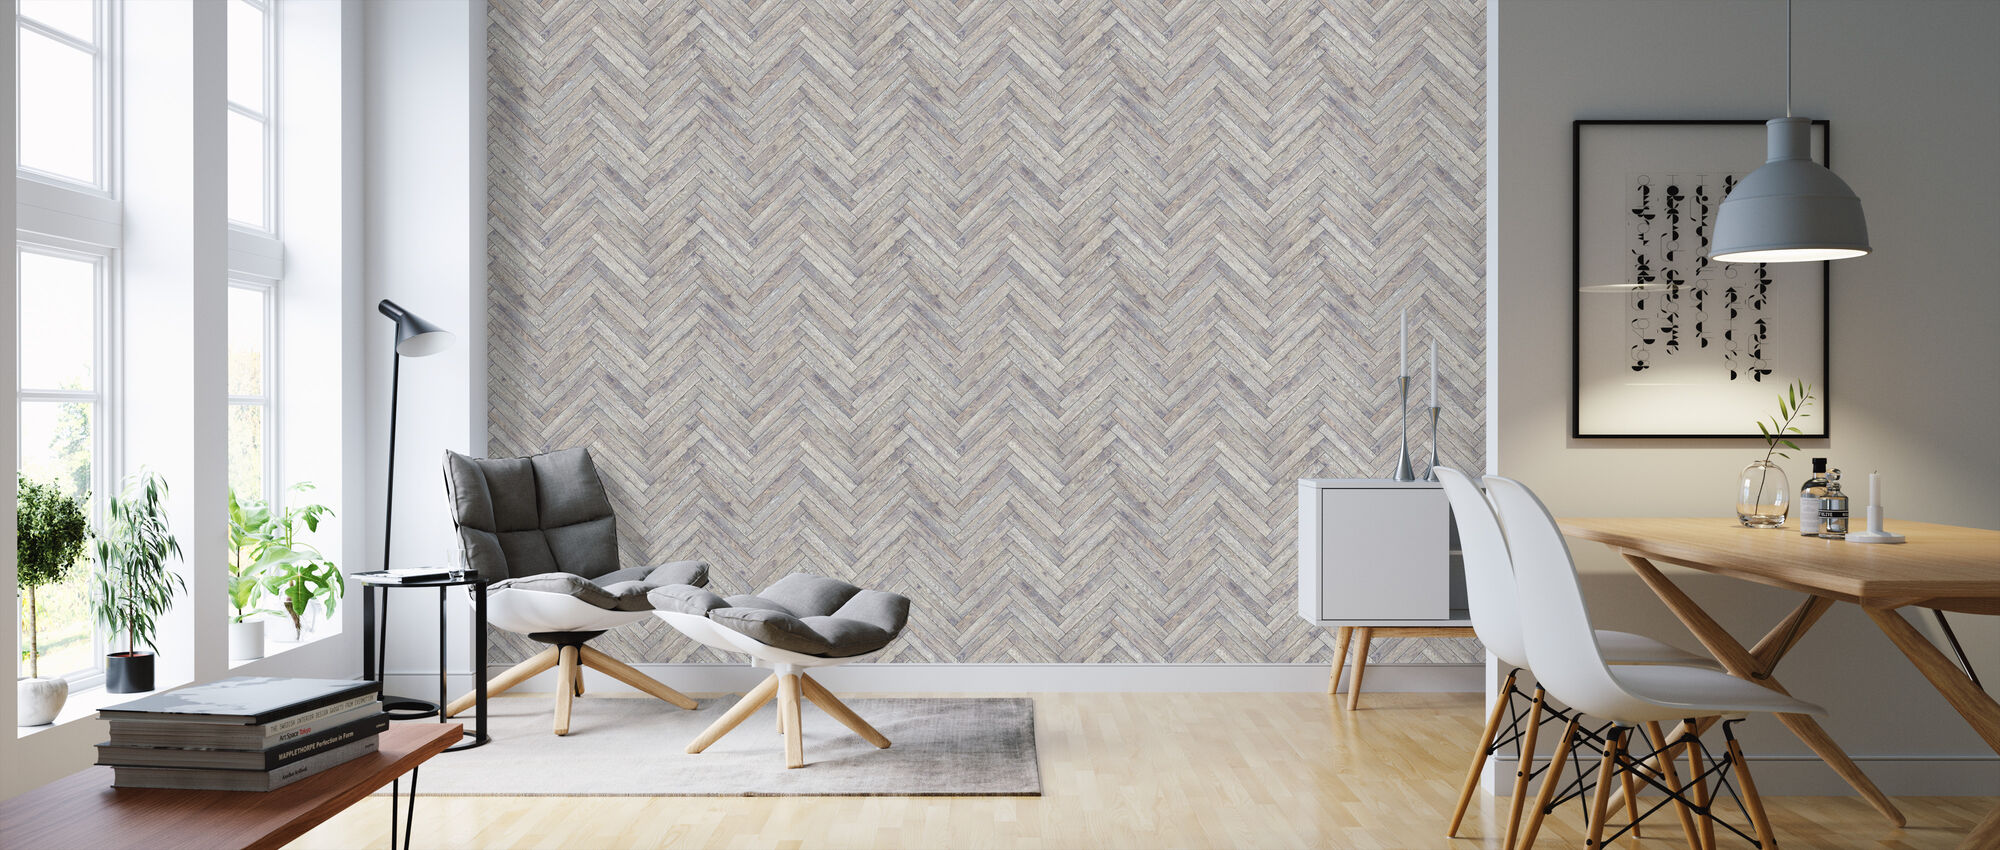 Chevron Wood - Wallpaper - Living Room